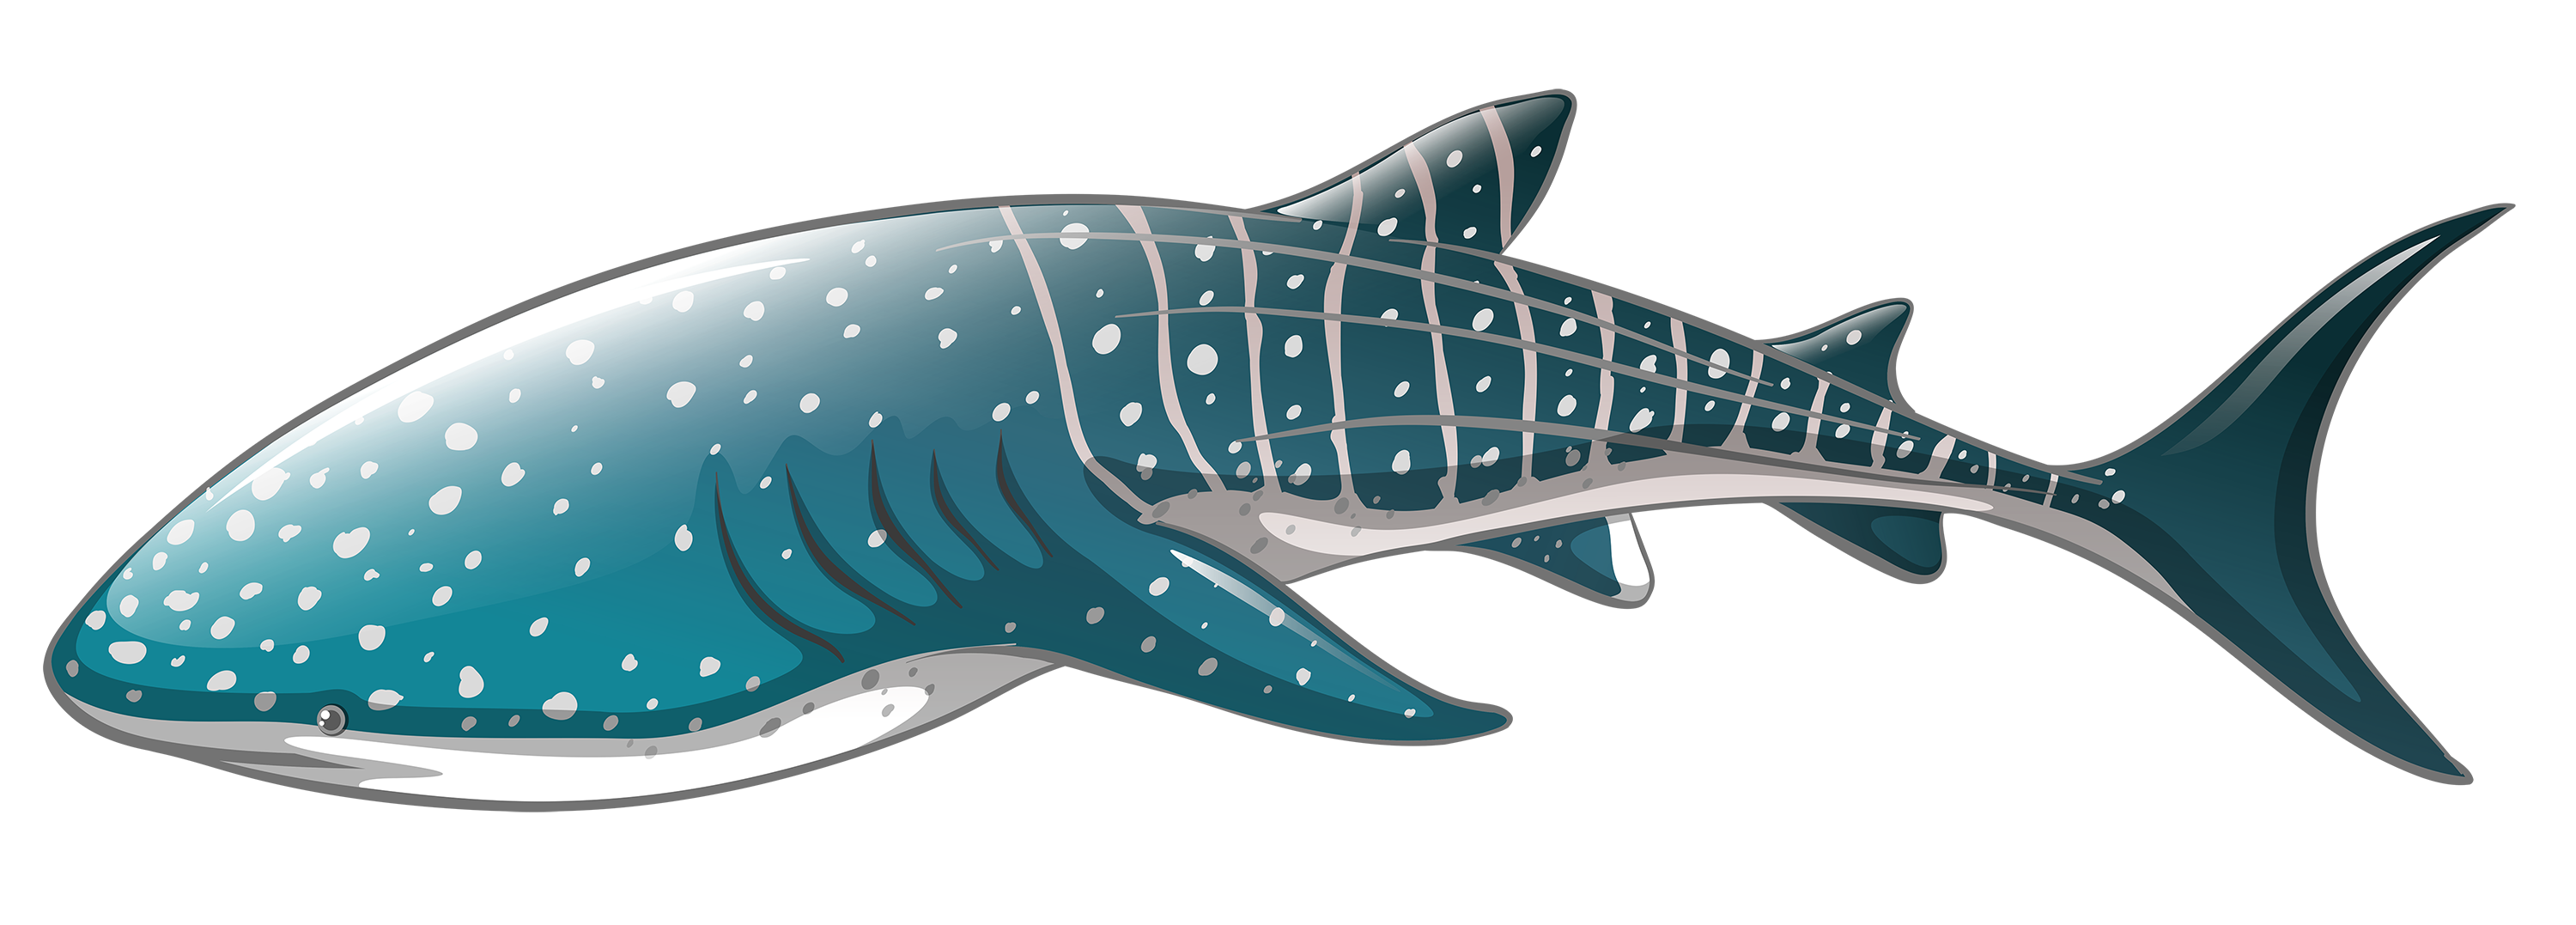 Leopard Shark clipart #1, Download drawings